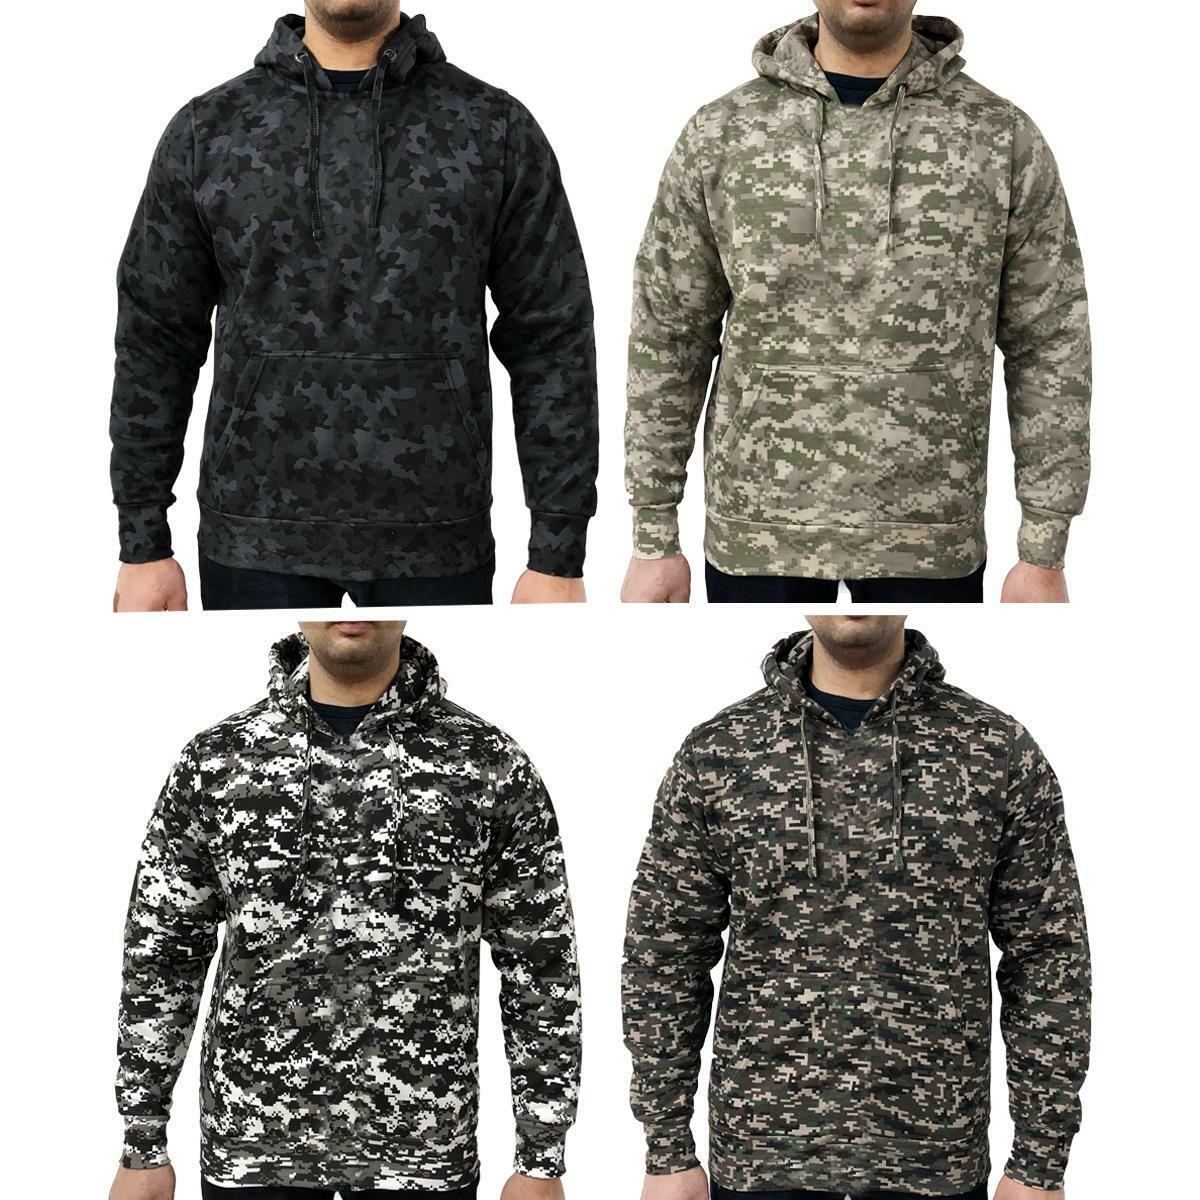 64dbb47d697 Game Mens Military Camo Digital Camouflage Hooded Top Hoodie ...